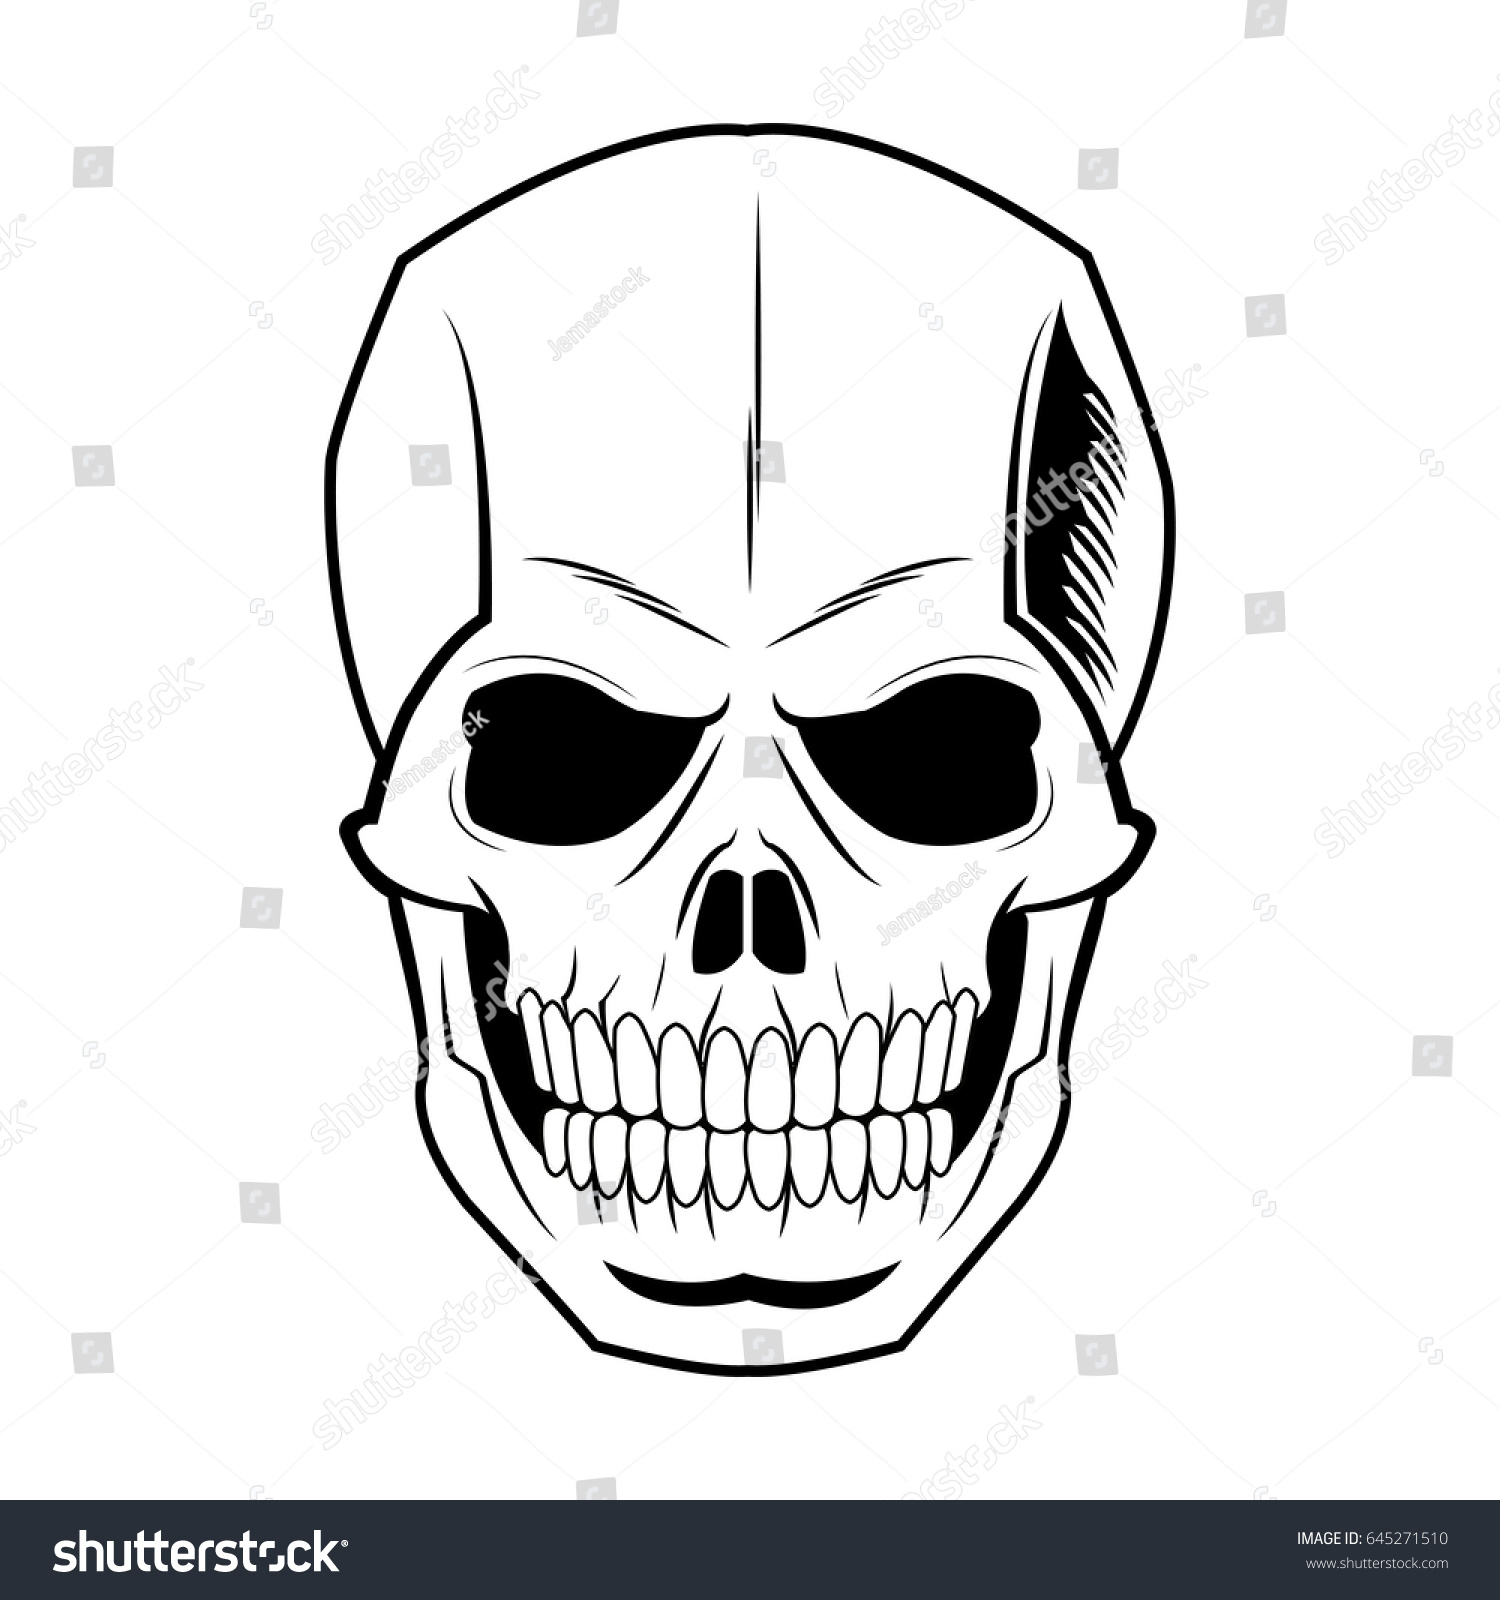 1500x1600 Skeleton Drawing Head How To Draw A Pirate Skull (Skeleton